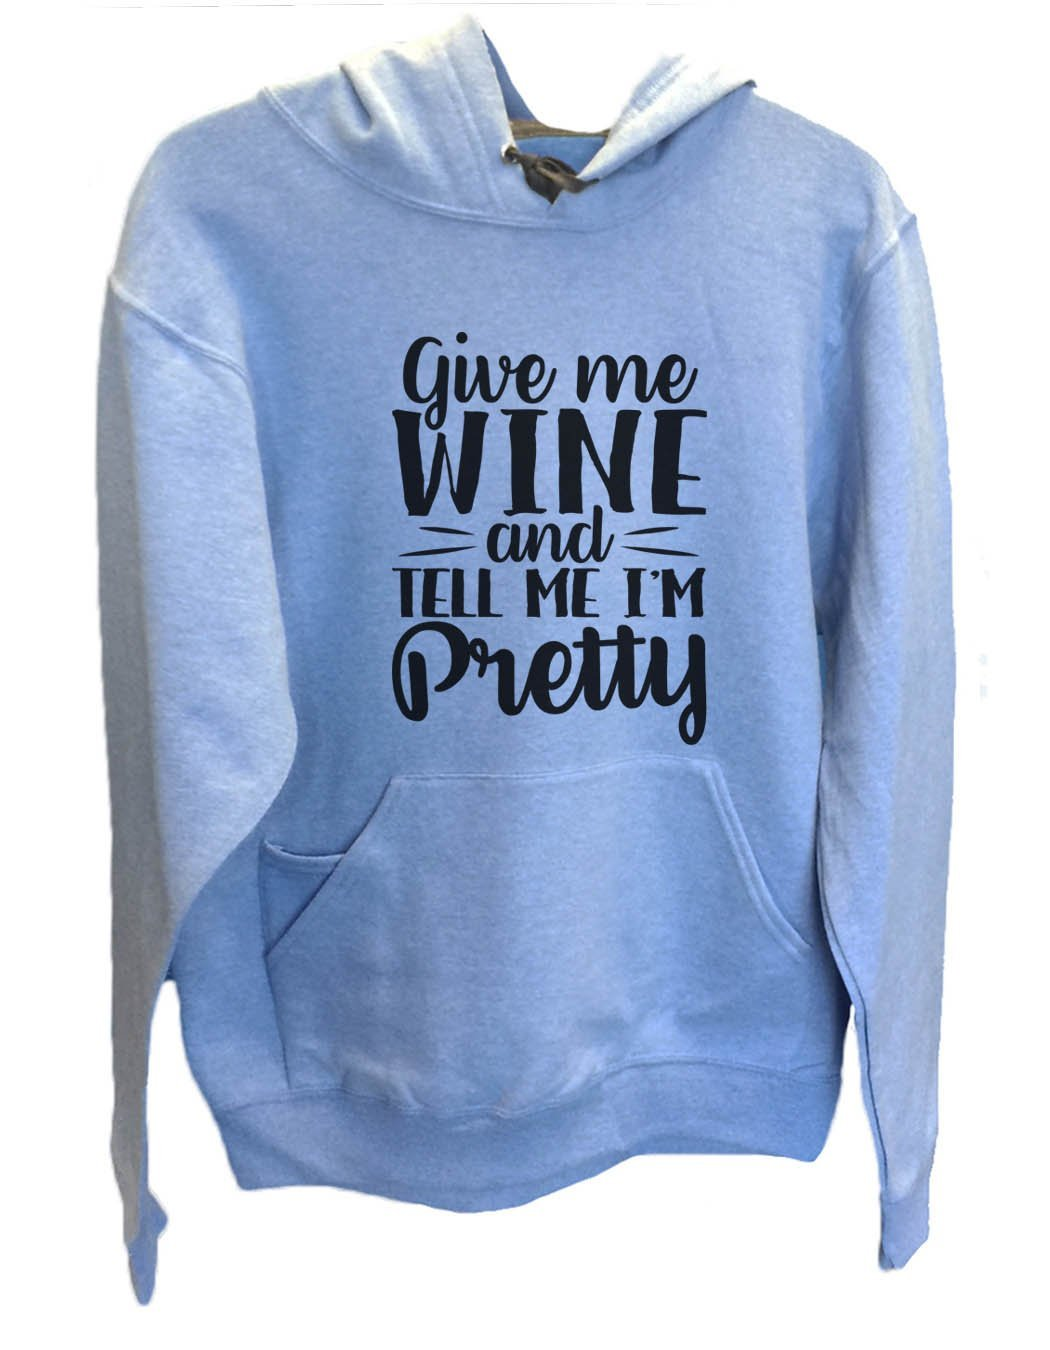 UNISEX HOODIE - Give Me Wine And Tell Me I'm Pretty - FUNNY MENS AND WOMENS HOODED SWEATSHIRTS - 2138 Funny Shirt Small / North Carolina Blue